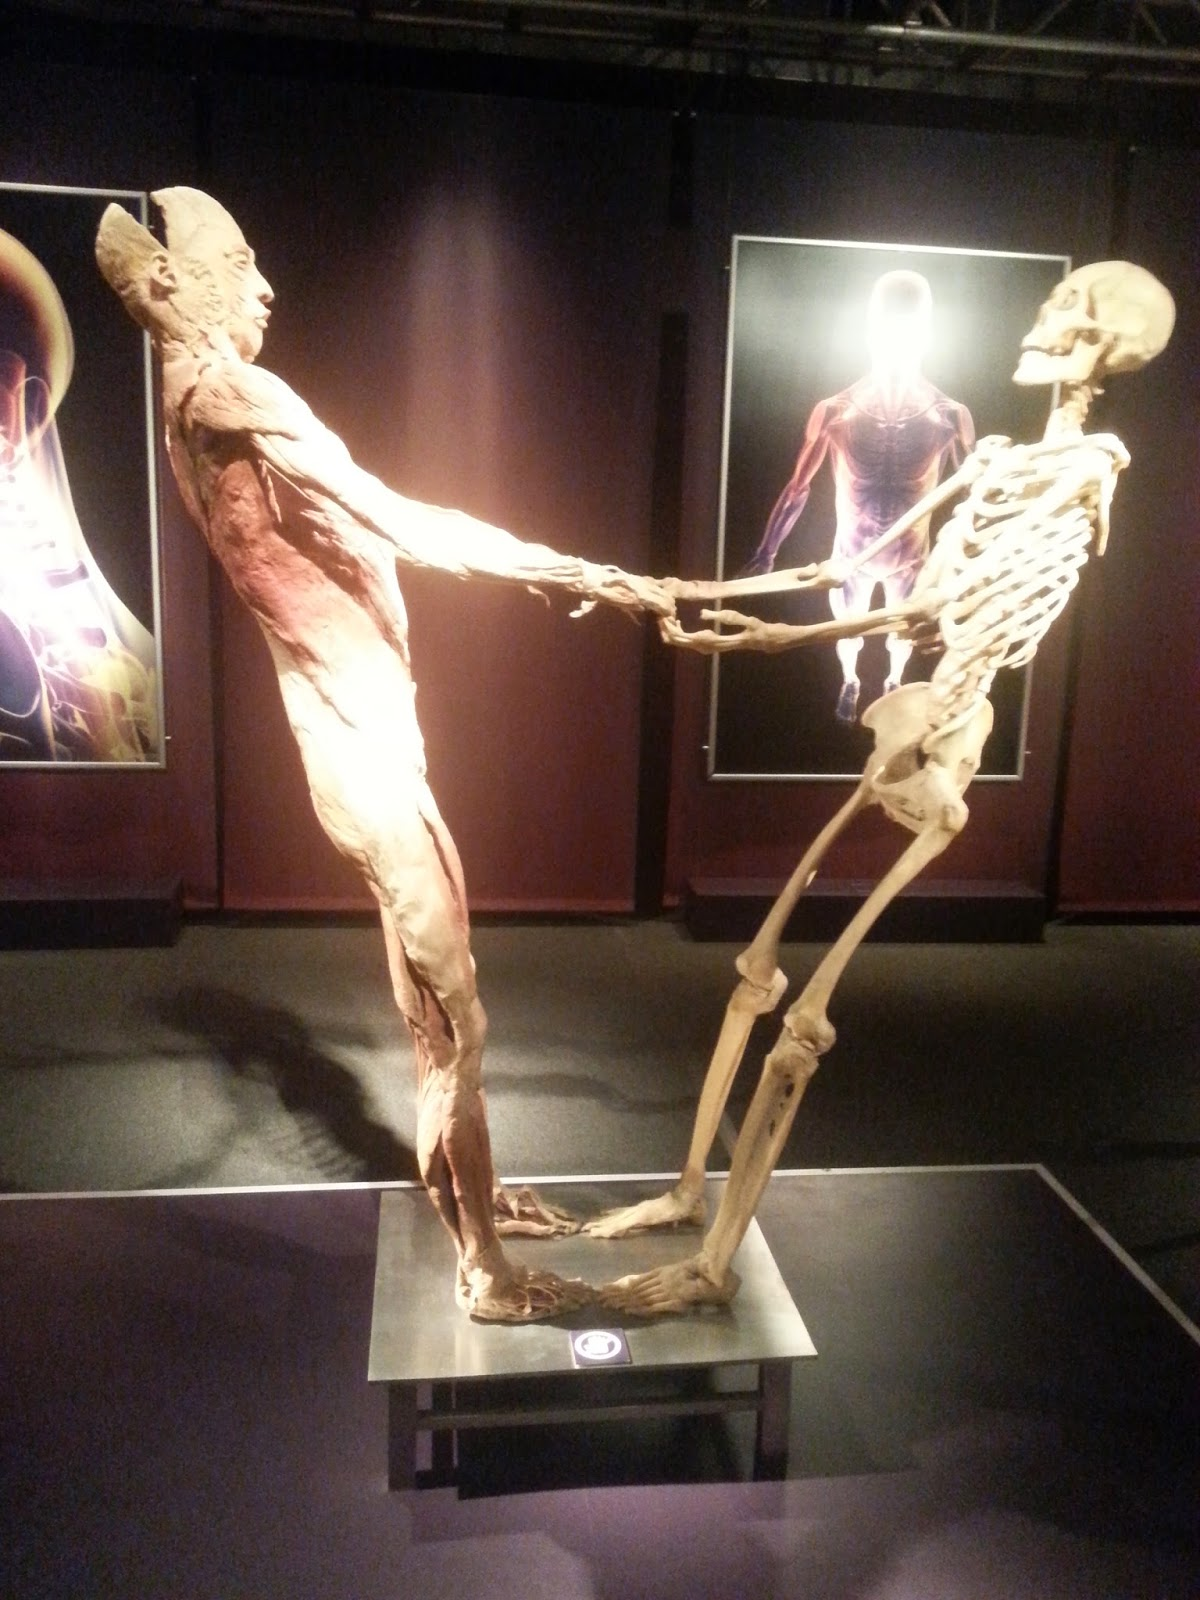 the human body data made flesh essay Meet oscar the modular real flesh body made by human other versions a pretty interesting video shared widely over internet, especially on social media sites, claims to show the prototype of first human flesh modular body in a project called oscar.